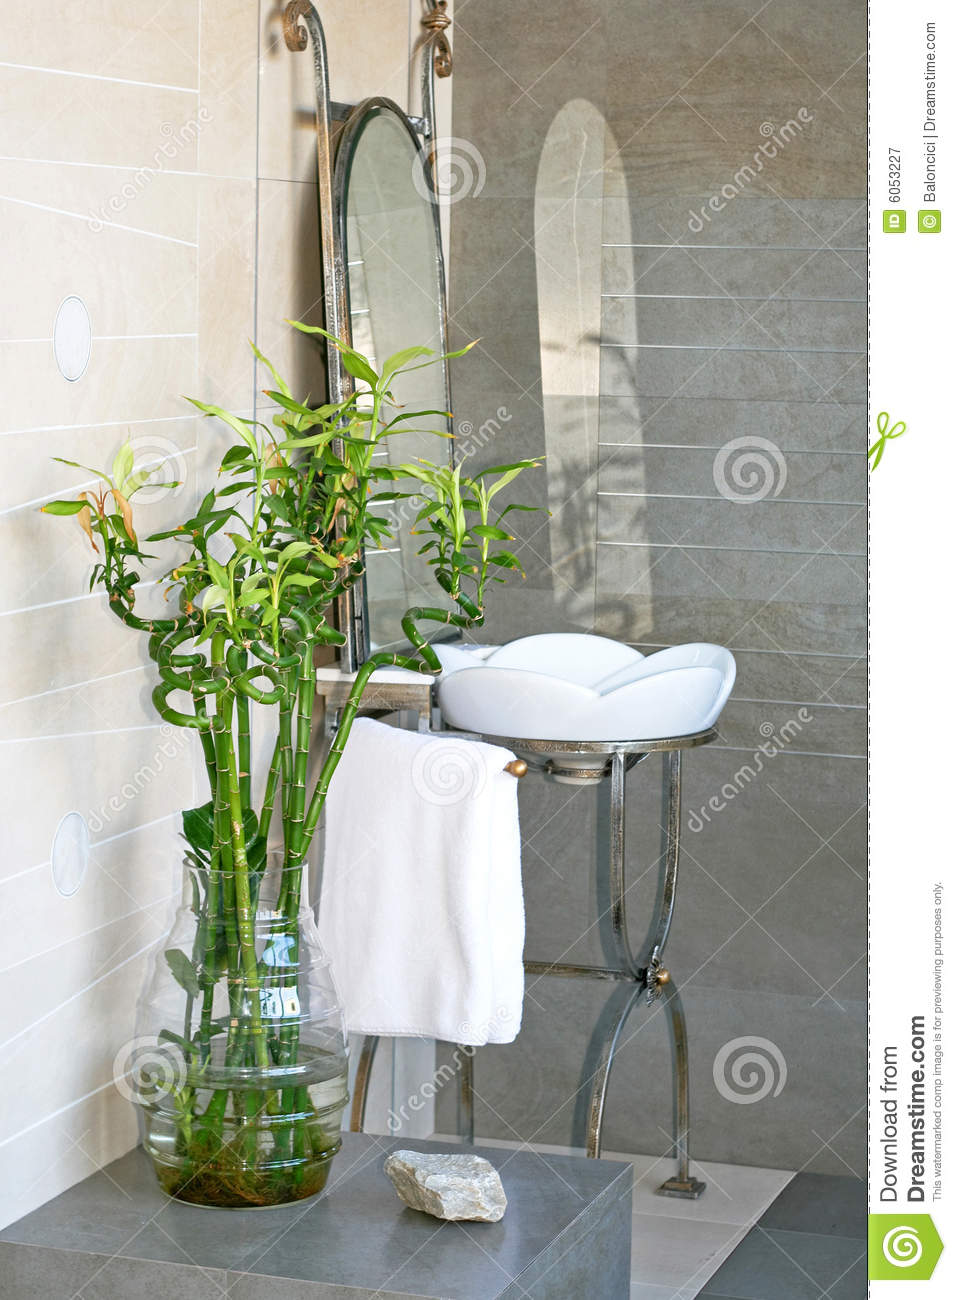 Bamboo bathroom royalty free stock photography image - Piante da bagno ...